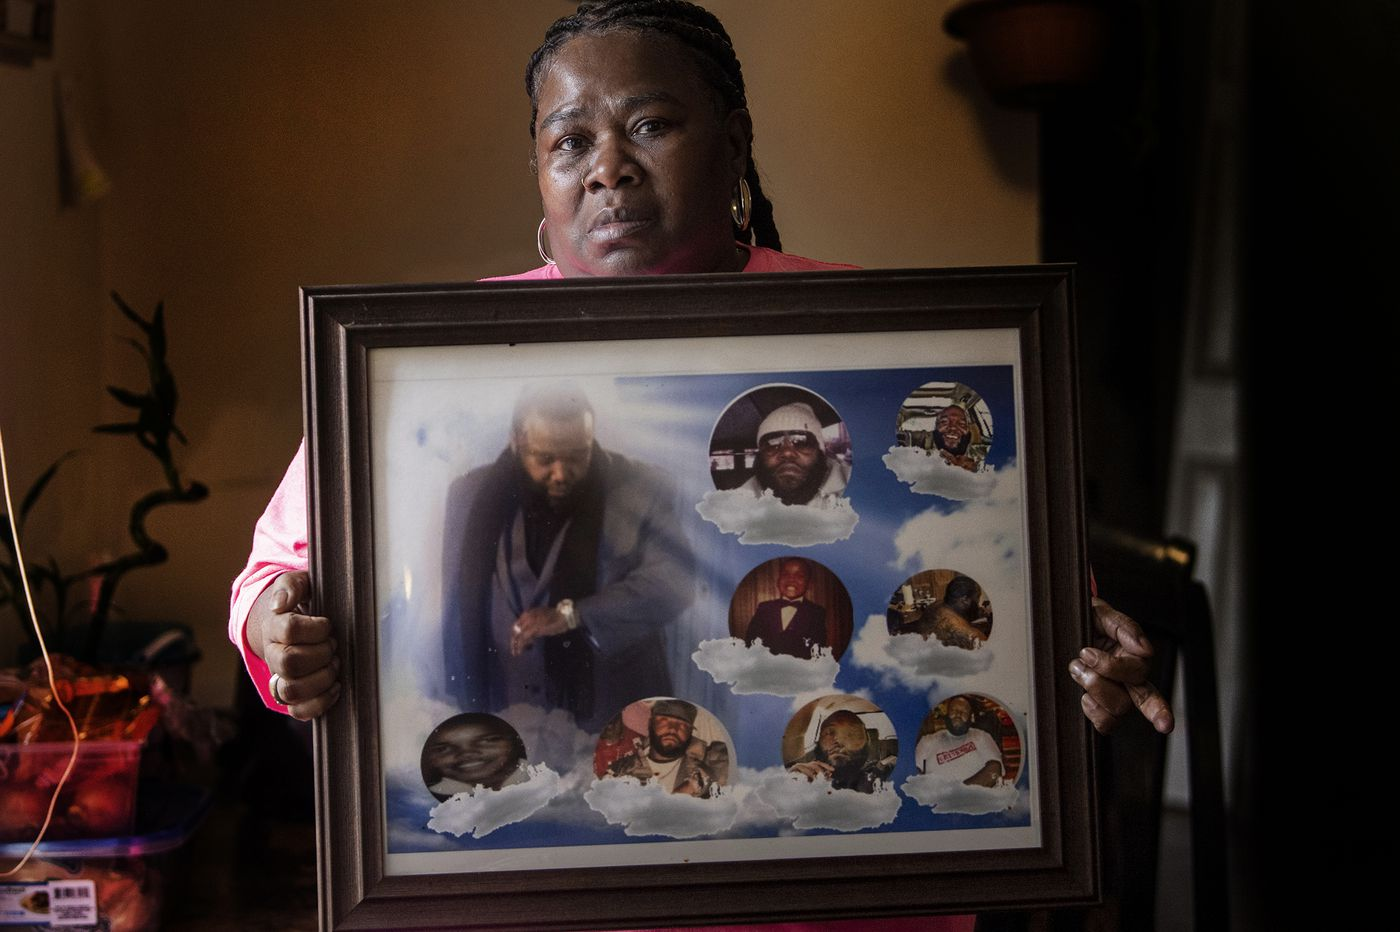 Their sons died behind bars. They hope the public outcry for police reform reaches prisons. | Helen Ubiñas